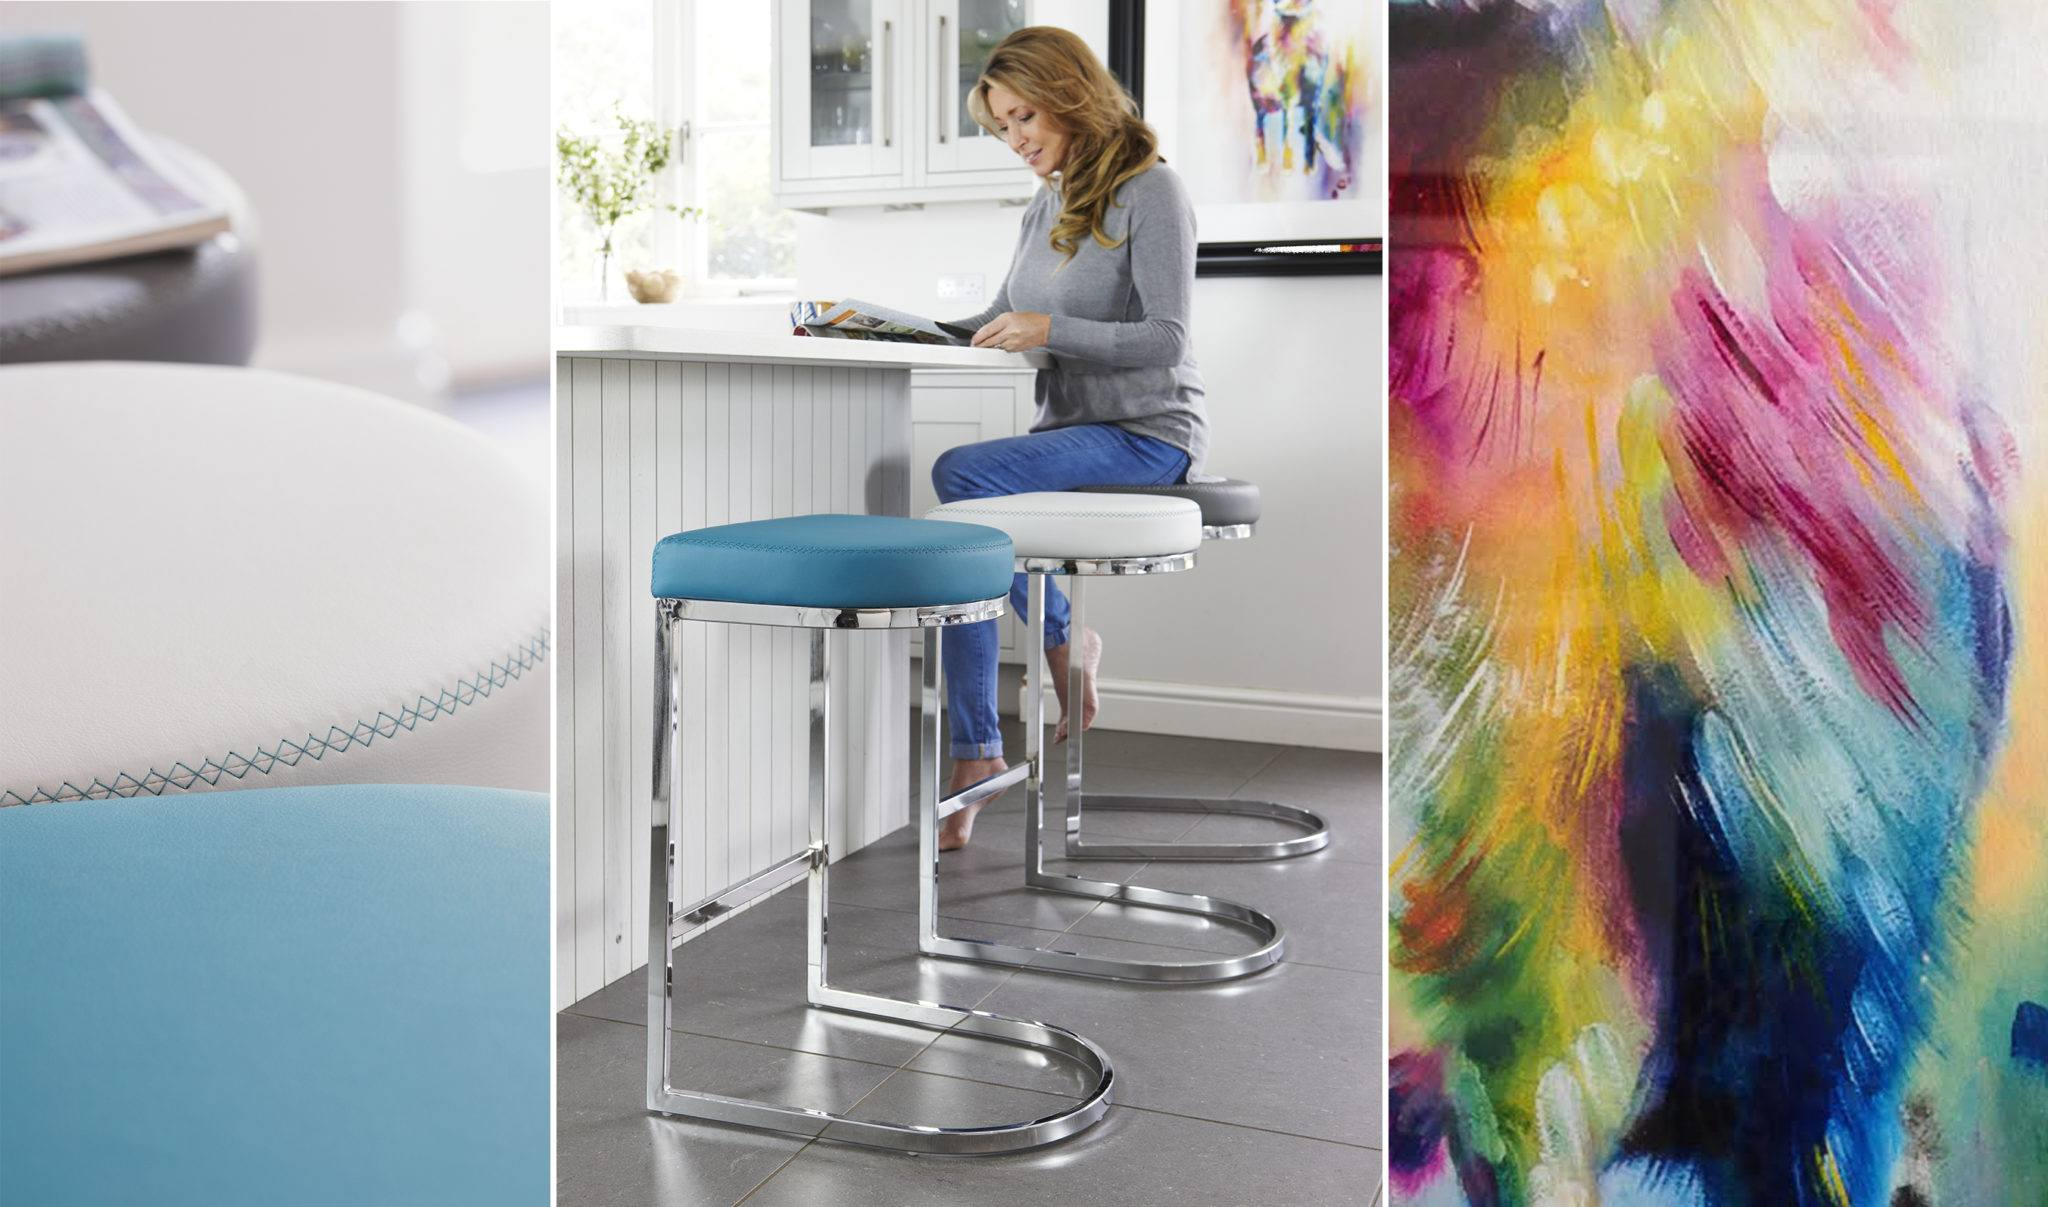 Form Chrome Bar Stools from the Exclusively Danetti with Julia Kendaell Range